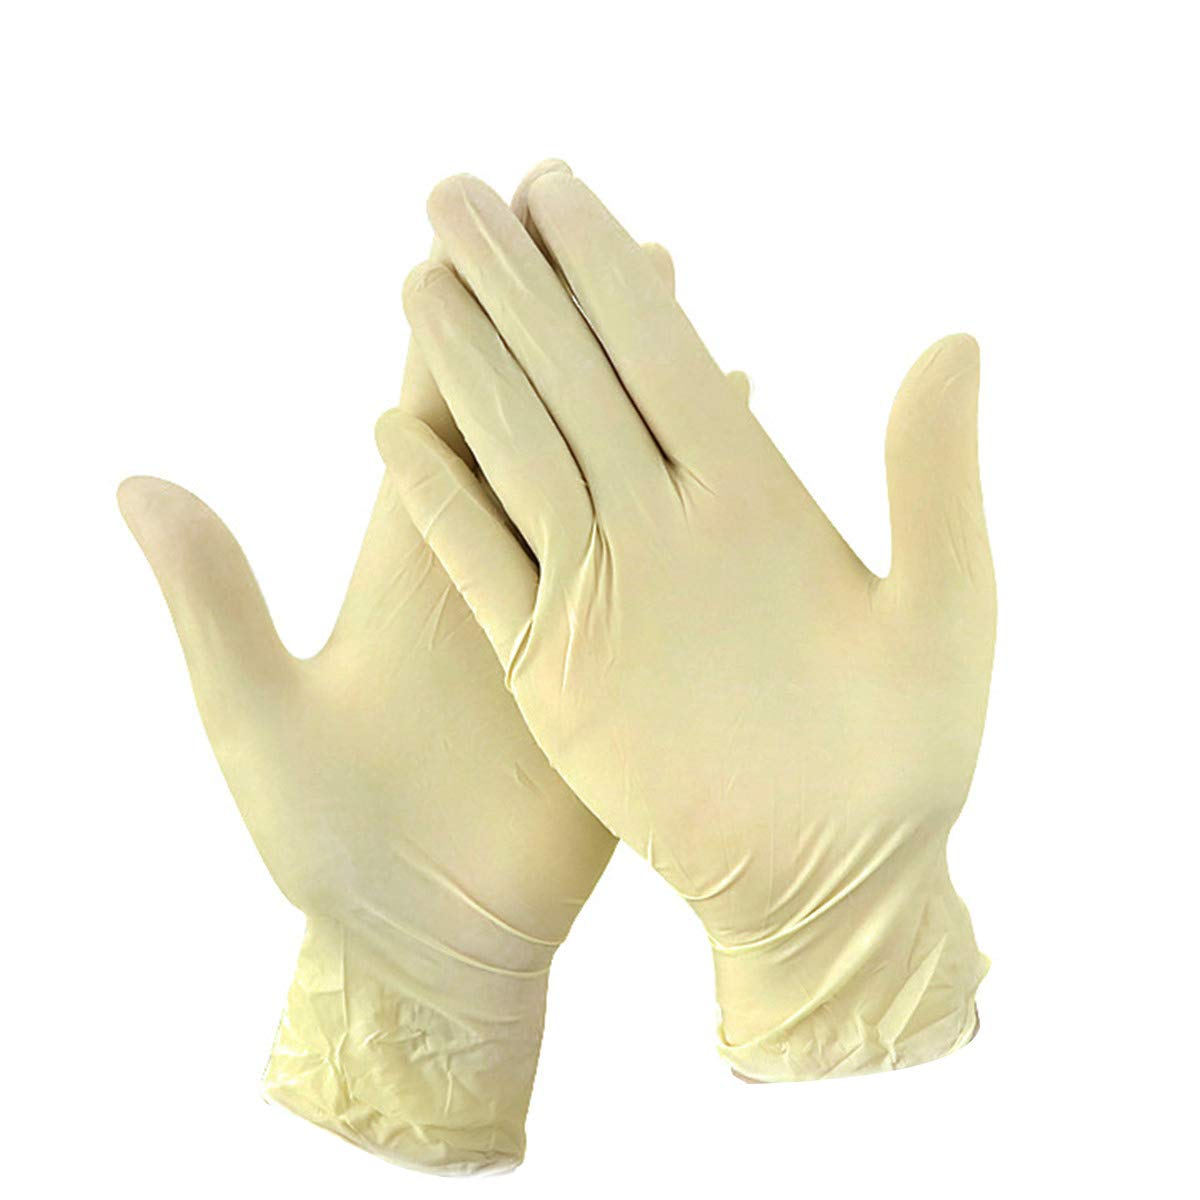 Queenbox 50 Pairs Large White Cotton Gloves for Cosmetic Moisturizing and Coin Inspection,S